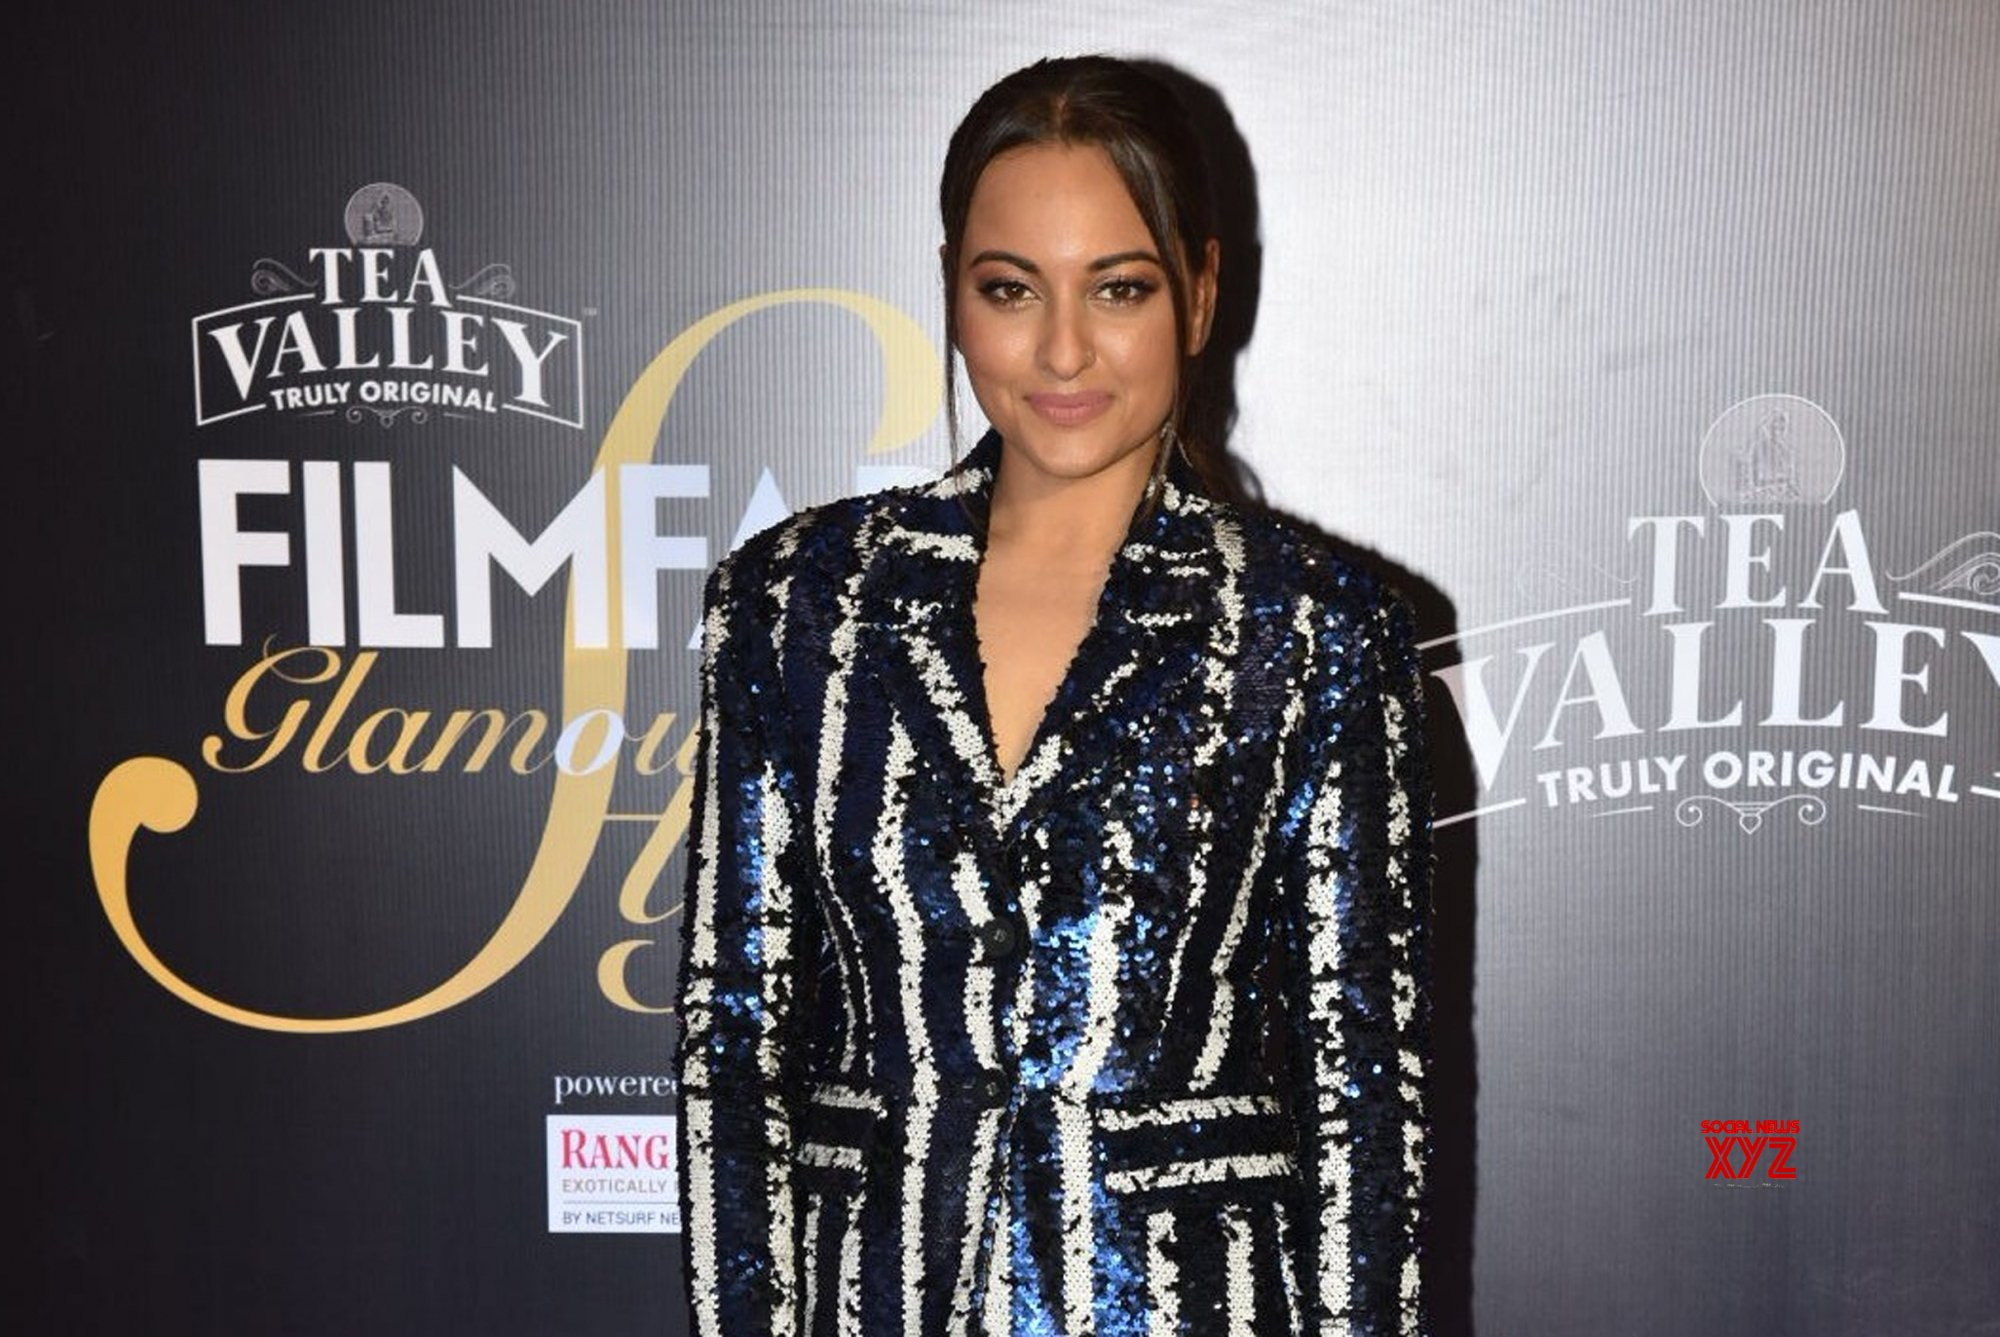 Mumbai: Filmfare Glamour And Style Awards 2019 - Sonakshi Sinha #Gallery